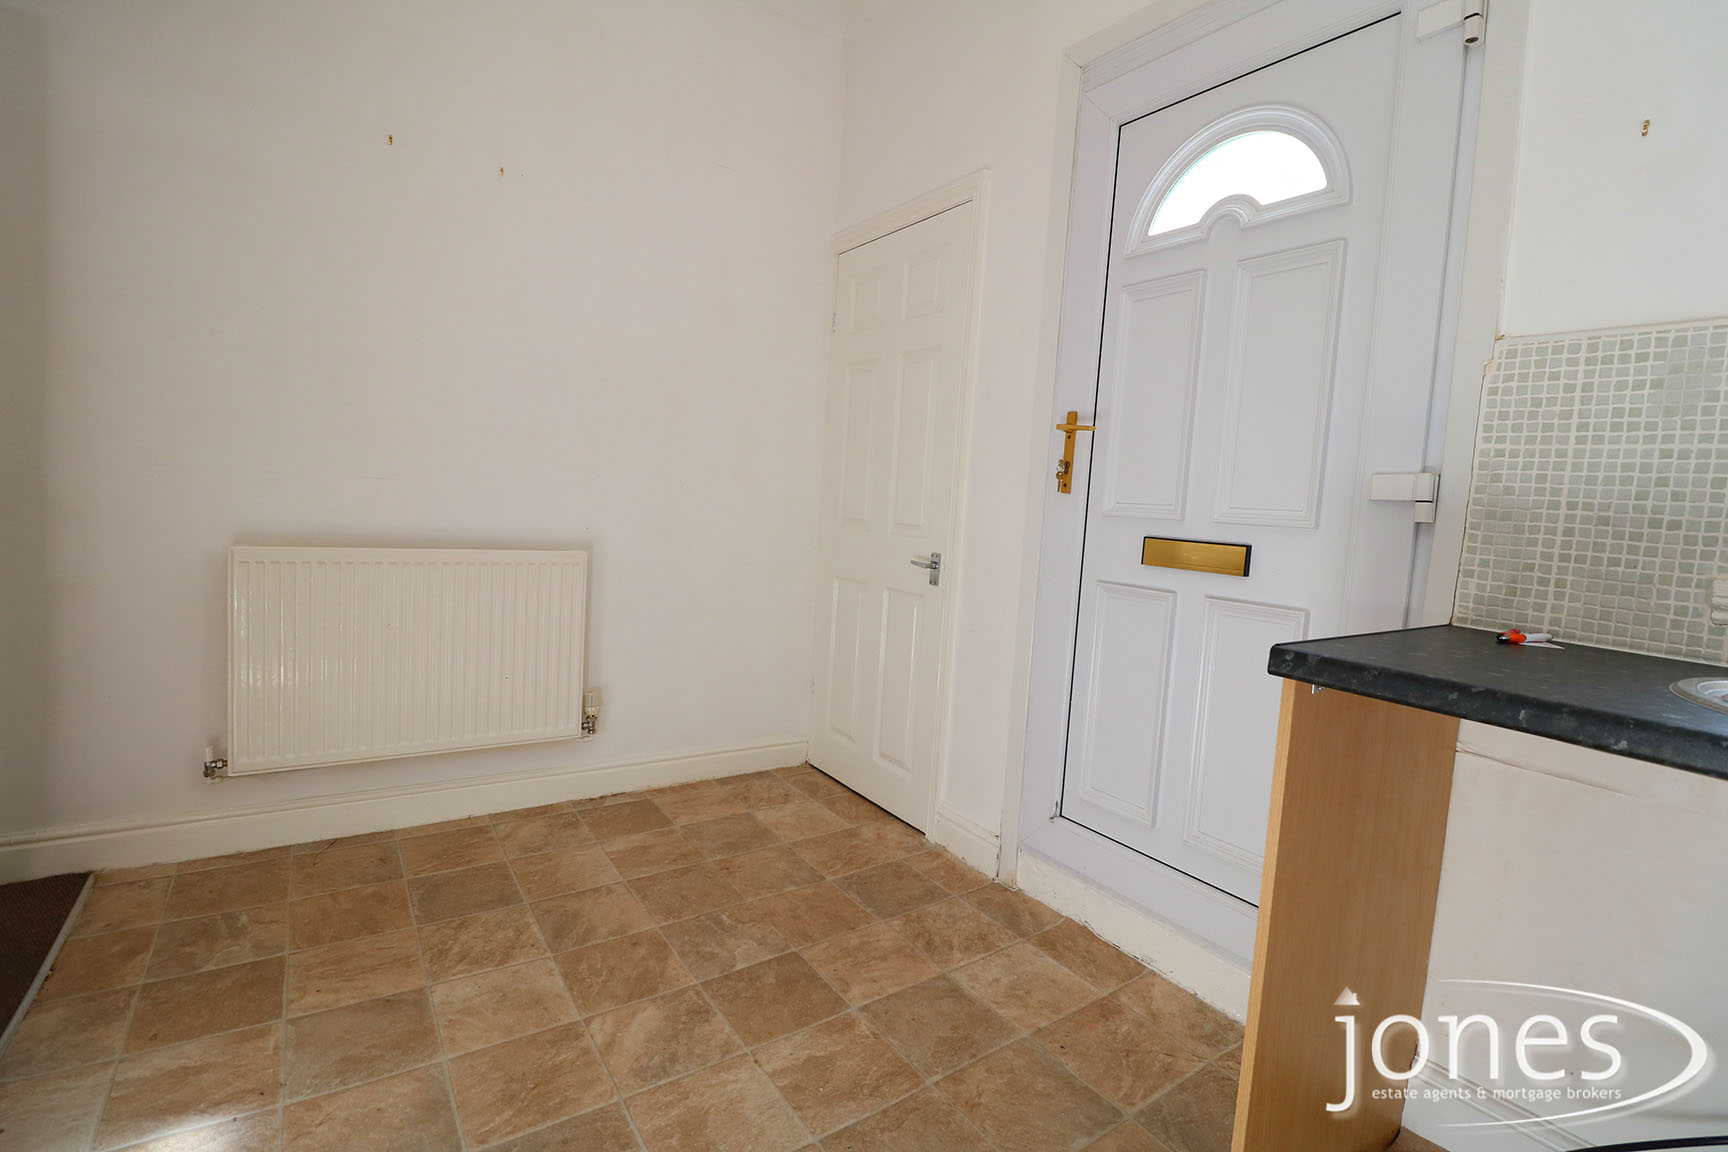 Home for Sale Let - Photo 04 Rosebery Street, Darlington, DL3 6EU